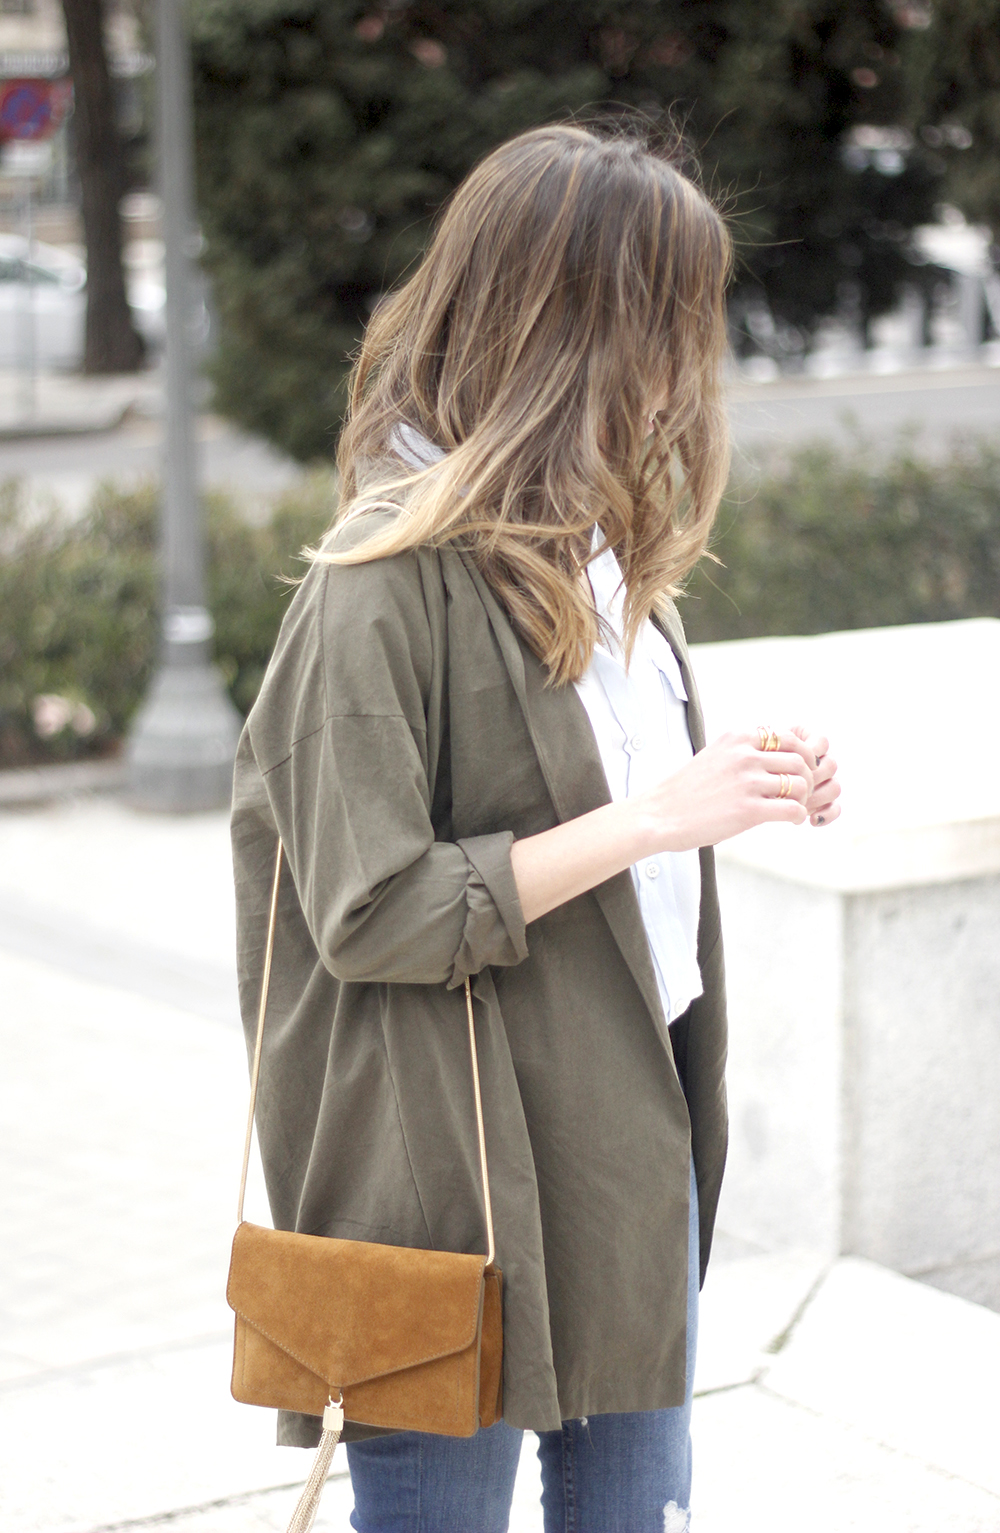 Military green shirt heels choker accessories jeans suede bag outfit05